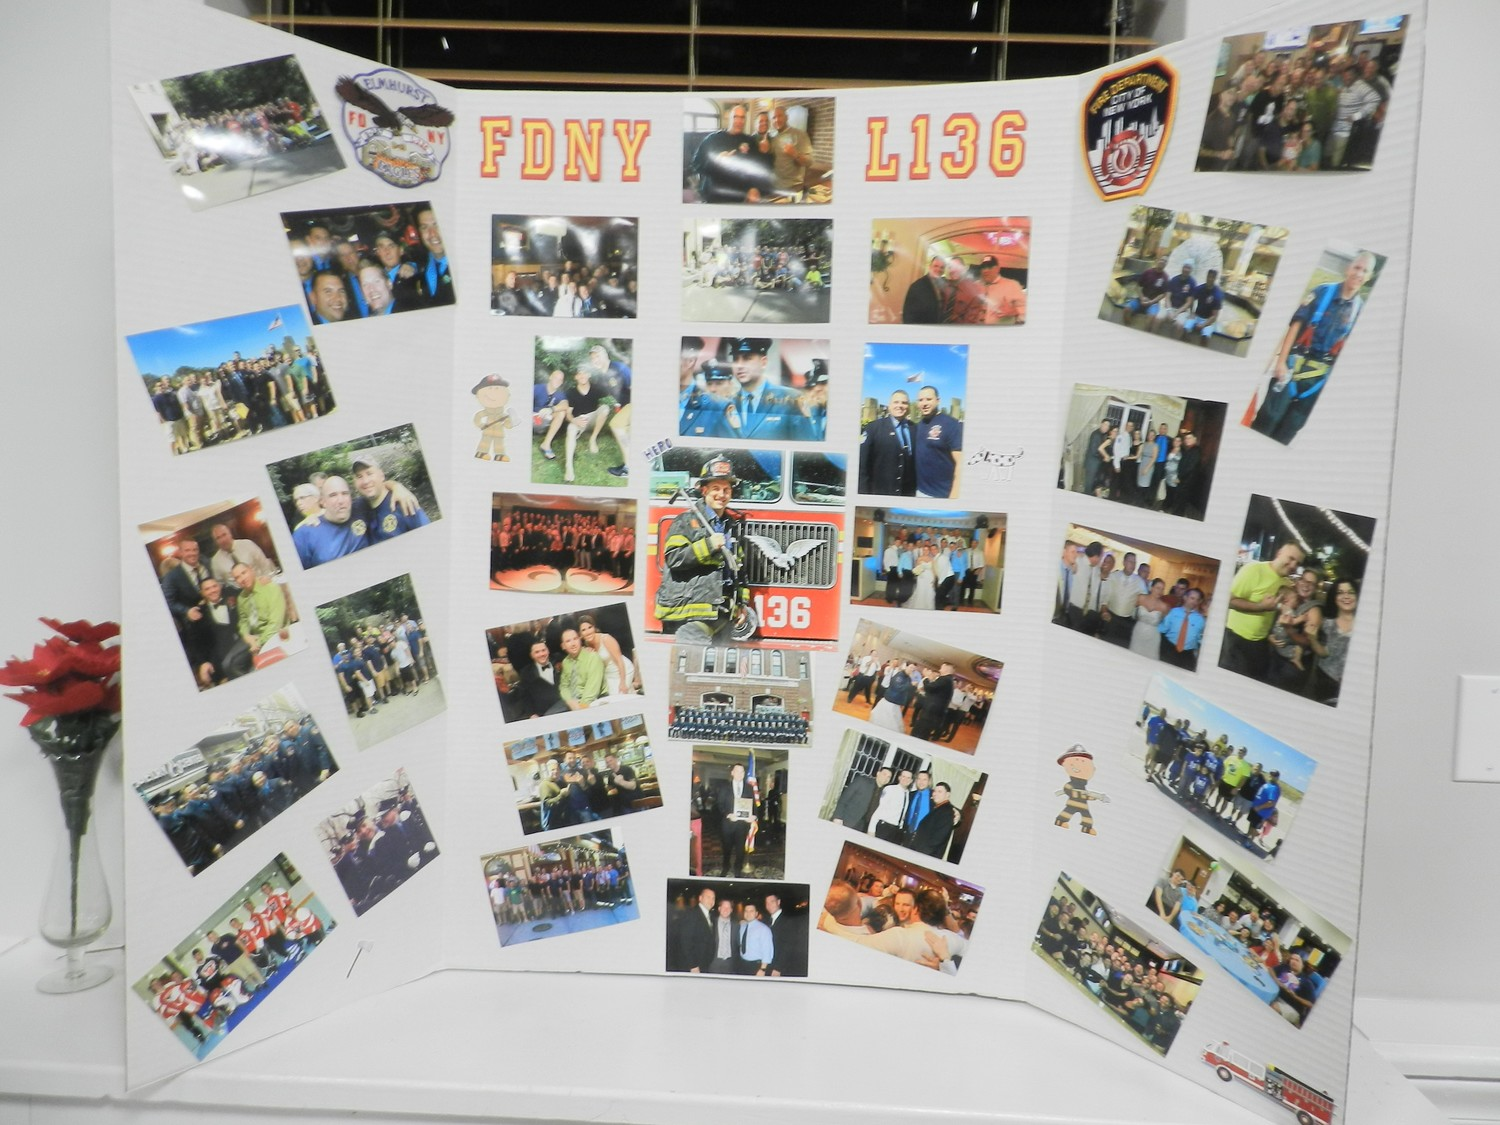 Photo boards were created in memory of  Hallquest, depicting his life.